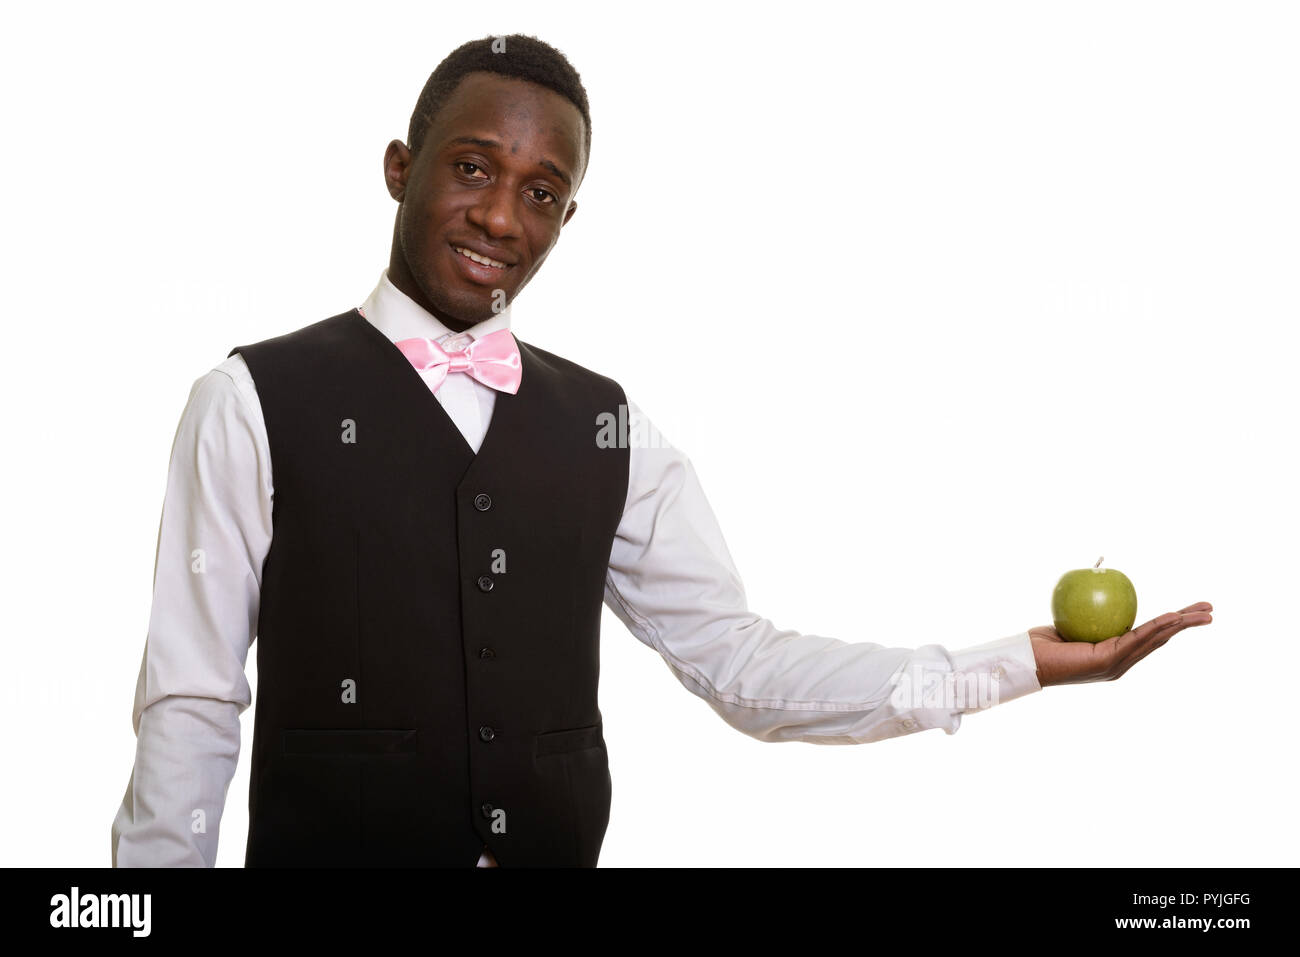 Young happy African waiter smiling and holding green apple - Stock Image